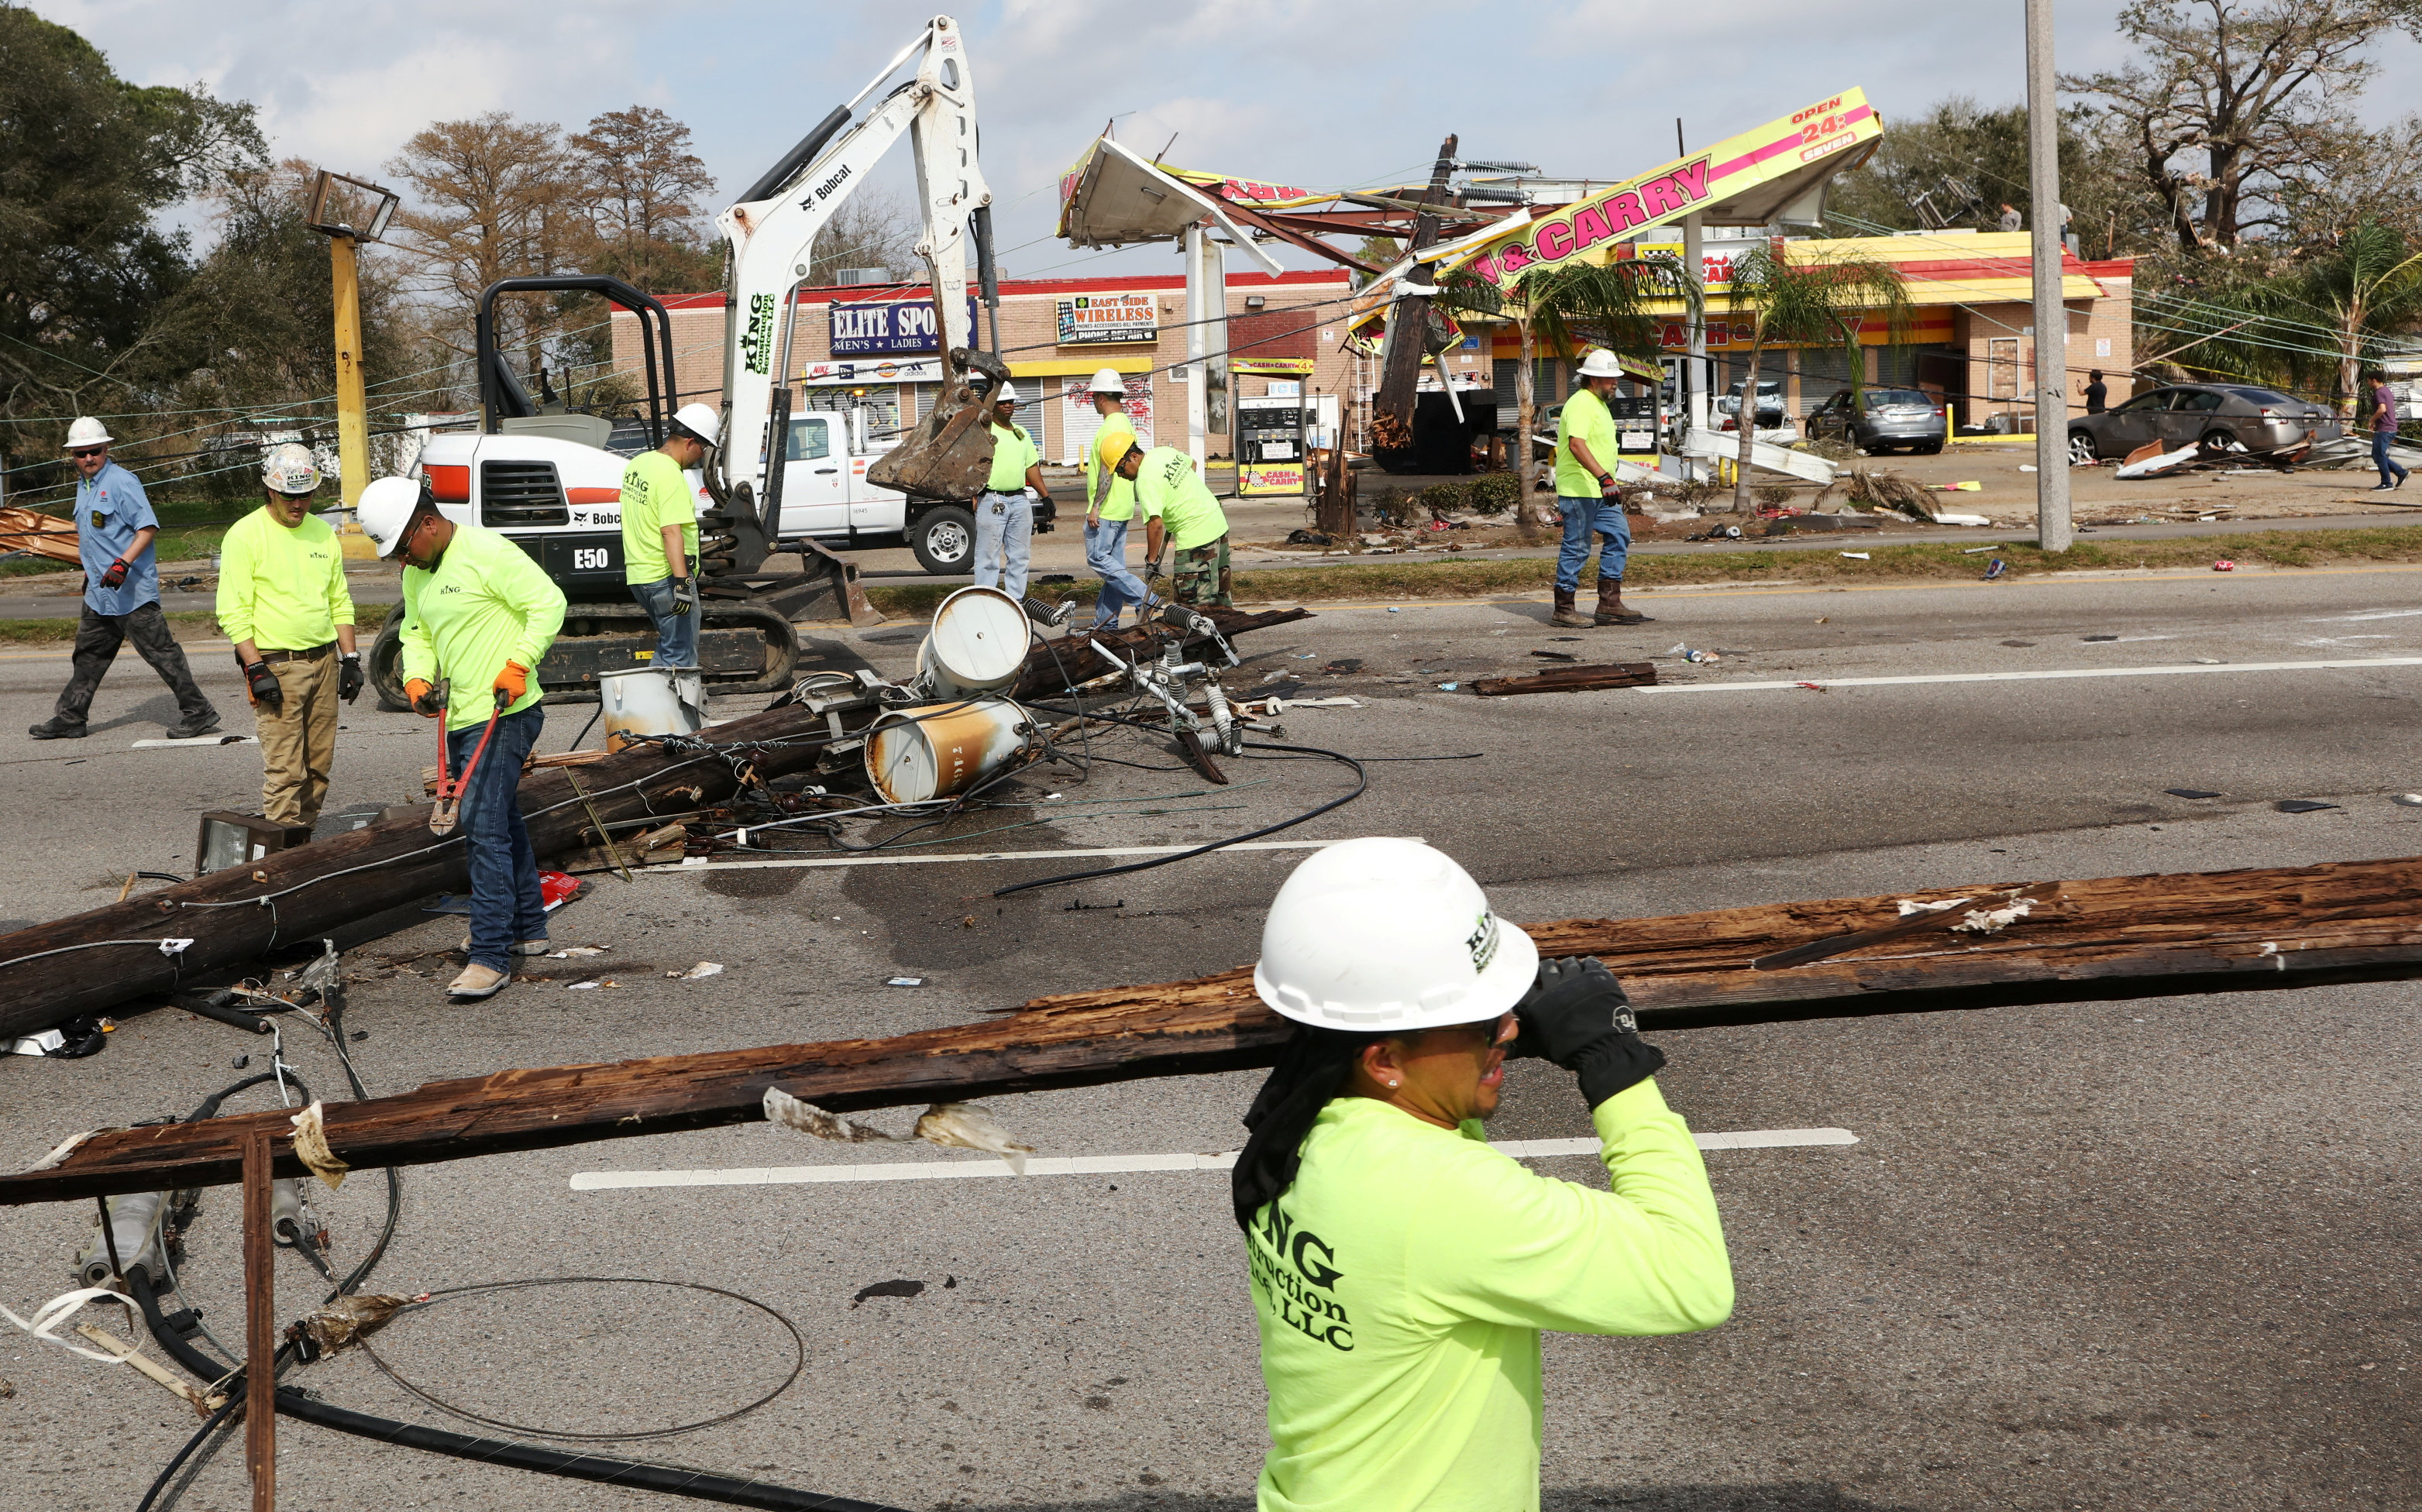 Cleanup crews pick up New Orleans area after tornado